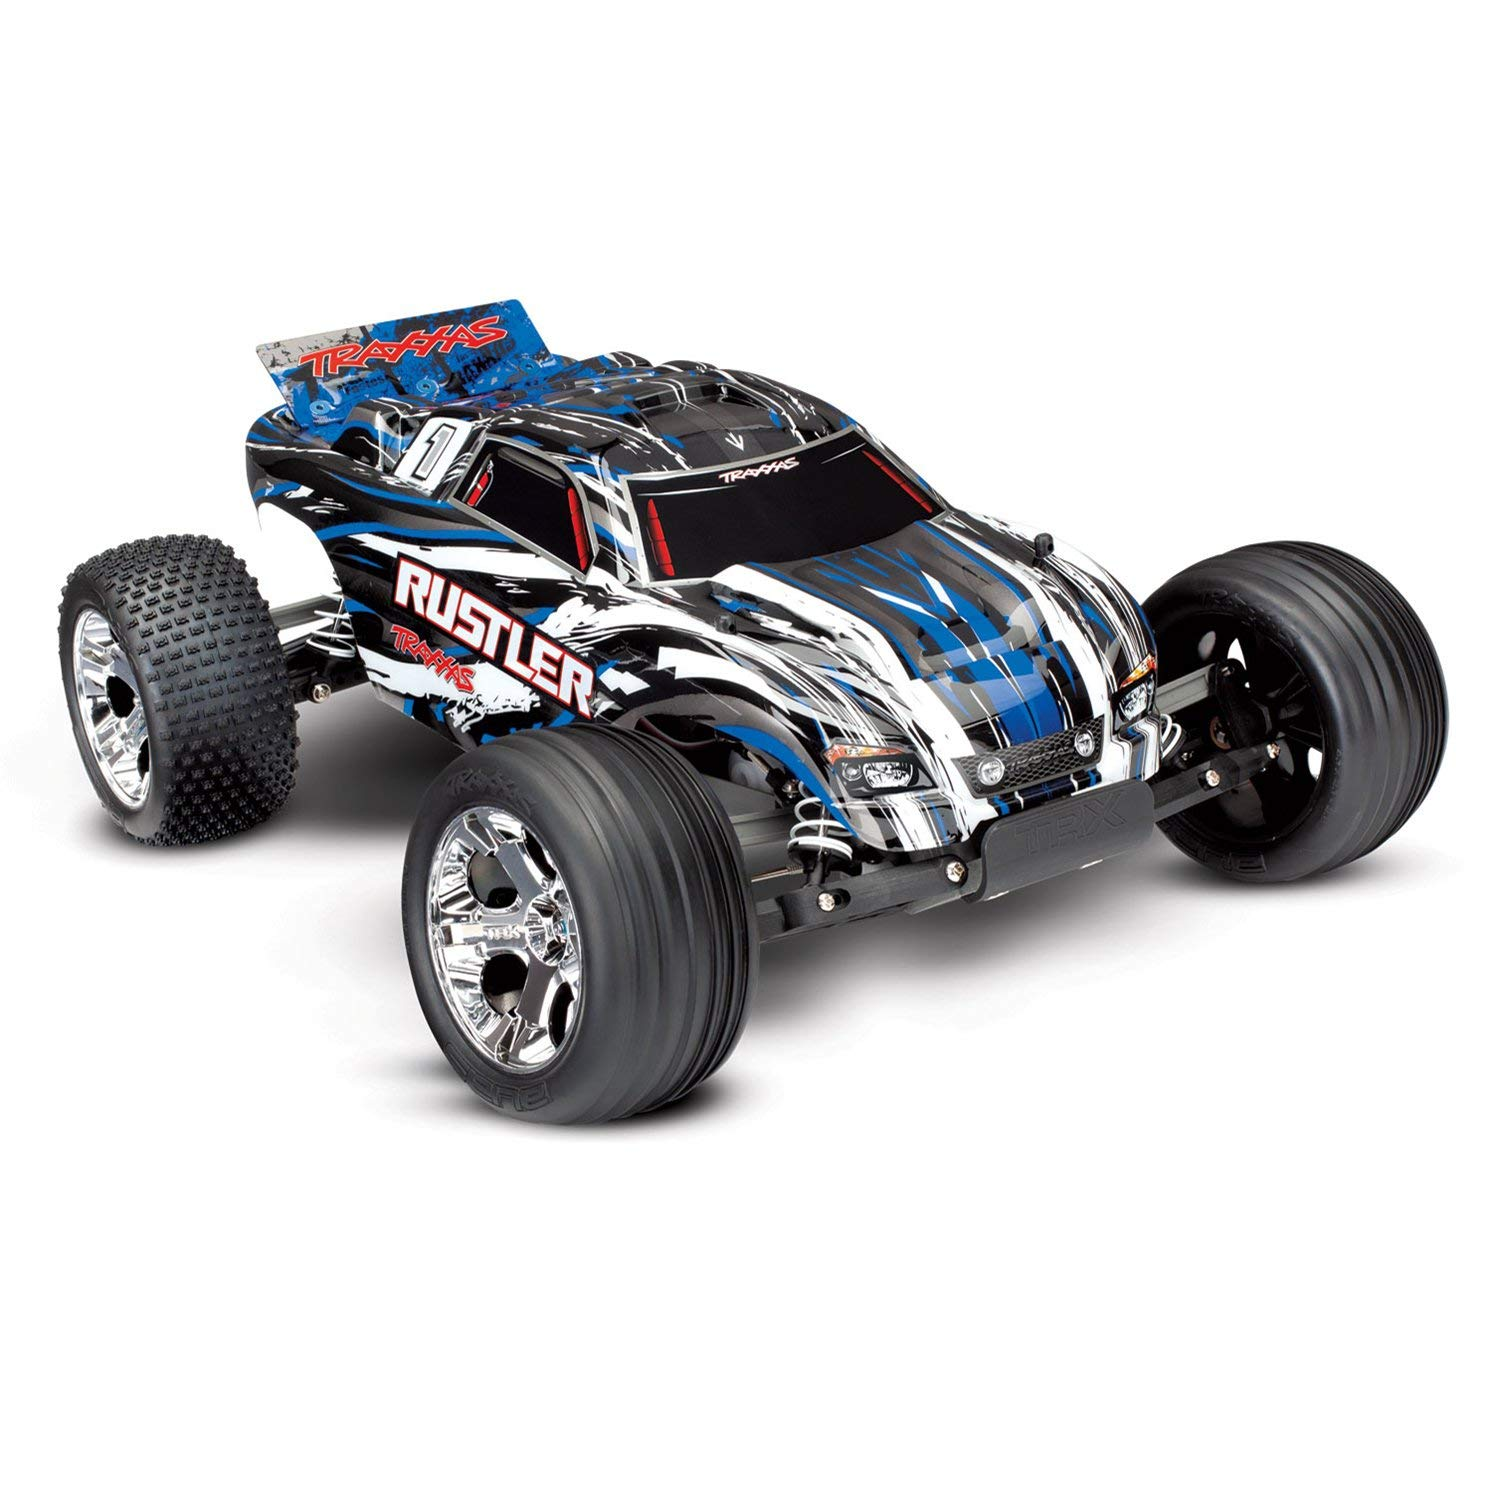 Traxxas 37054-1BLUEX Traxxas Rustler XL-5 Truck Ready-To-Race TQ 2 Channel 2.4Hz